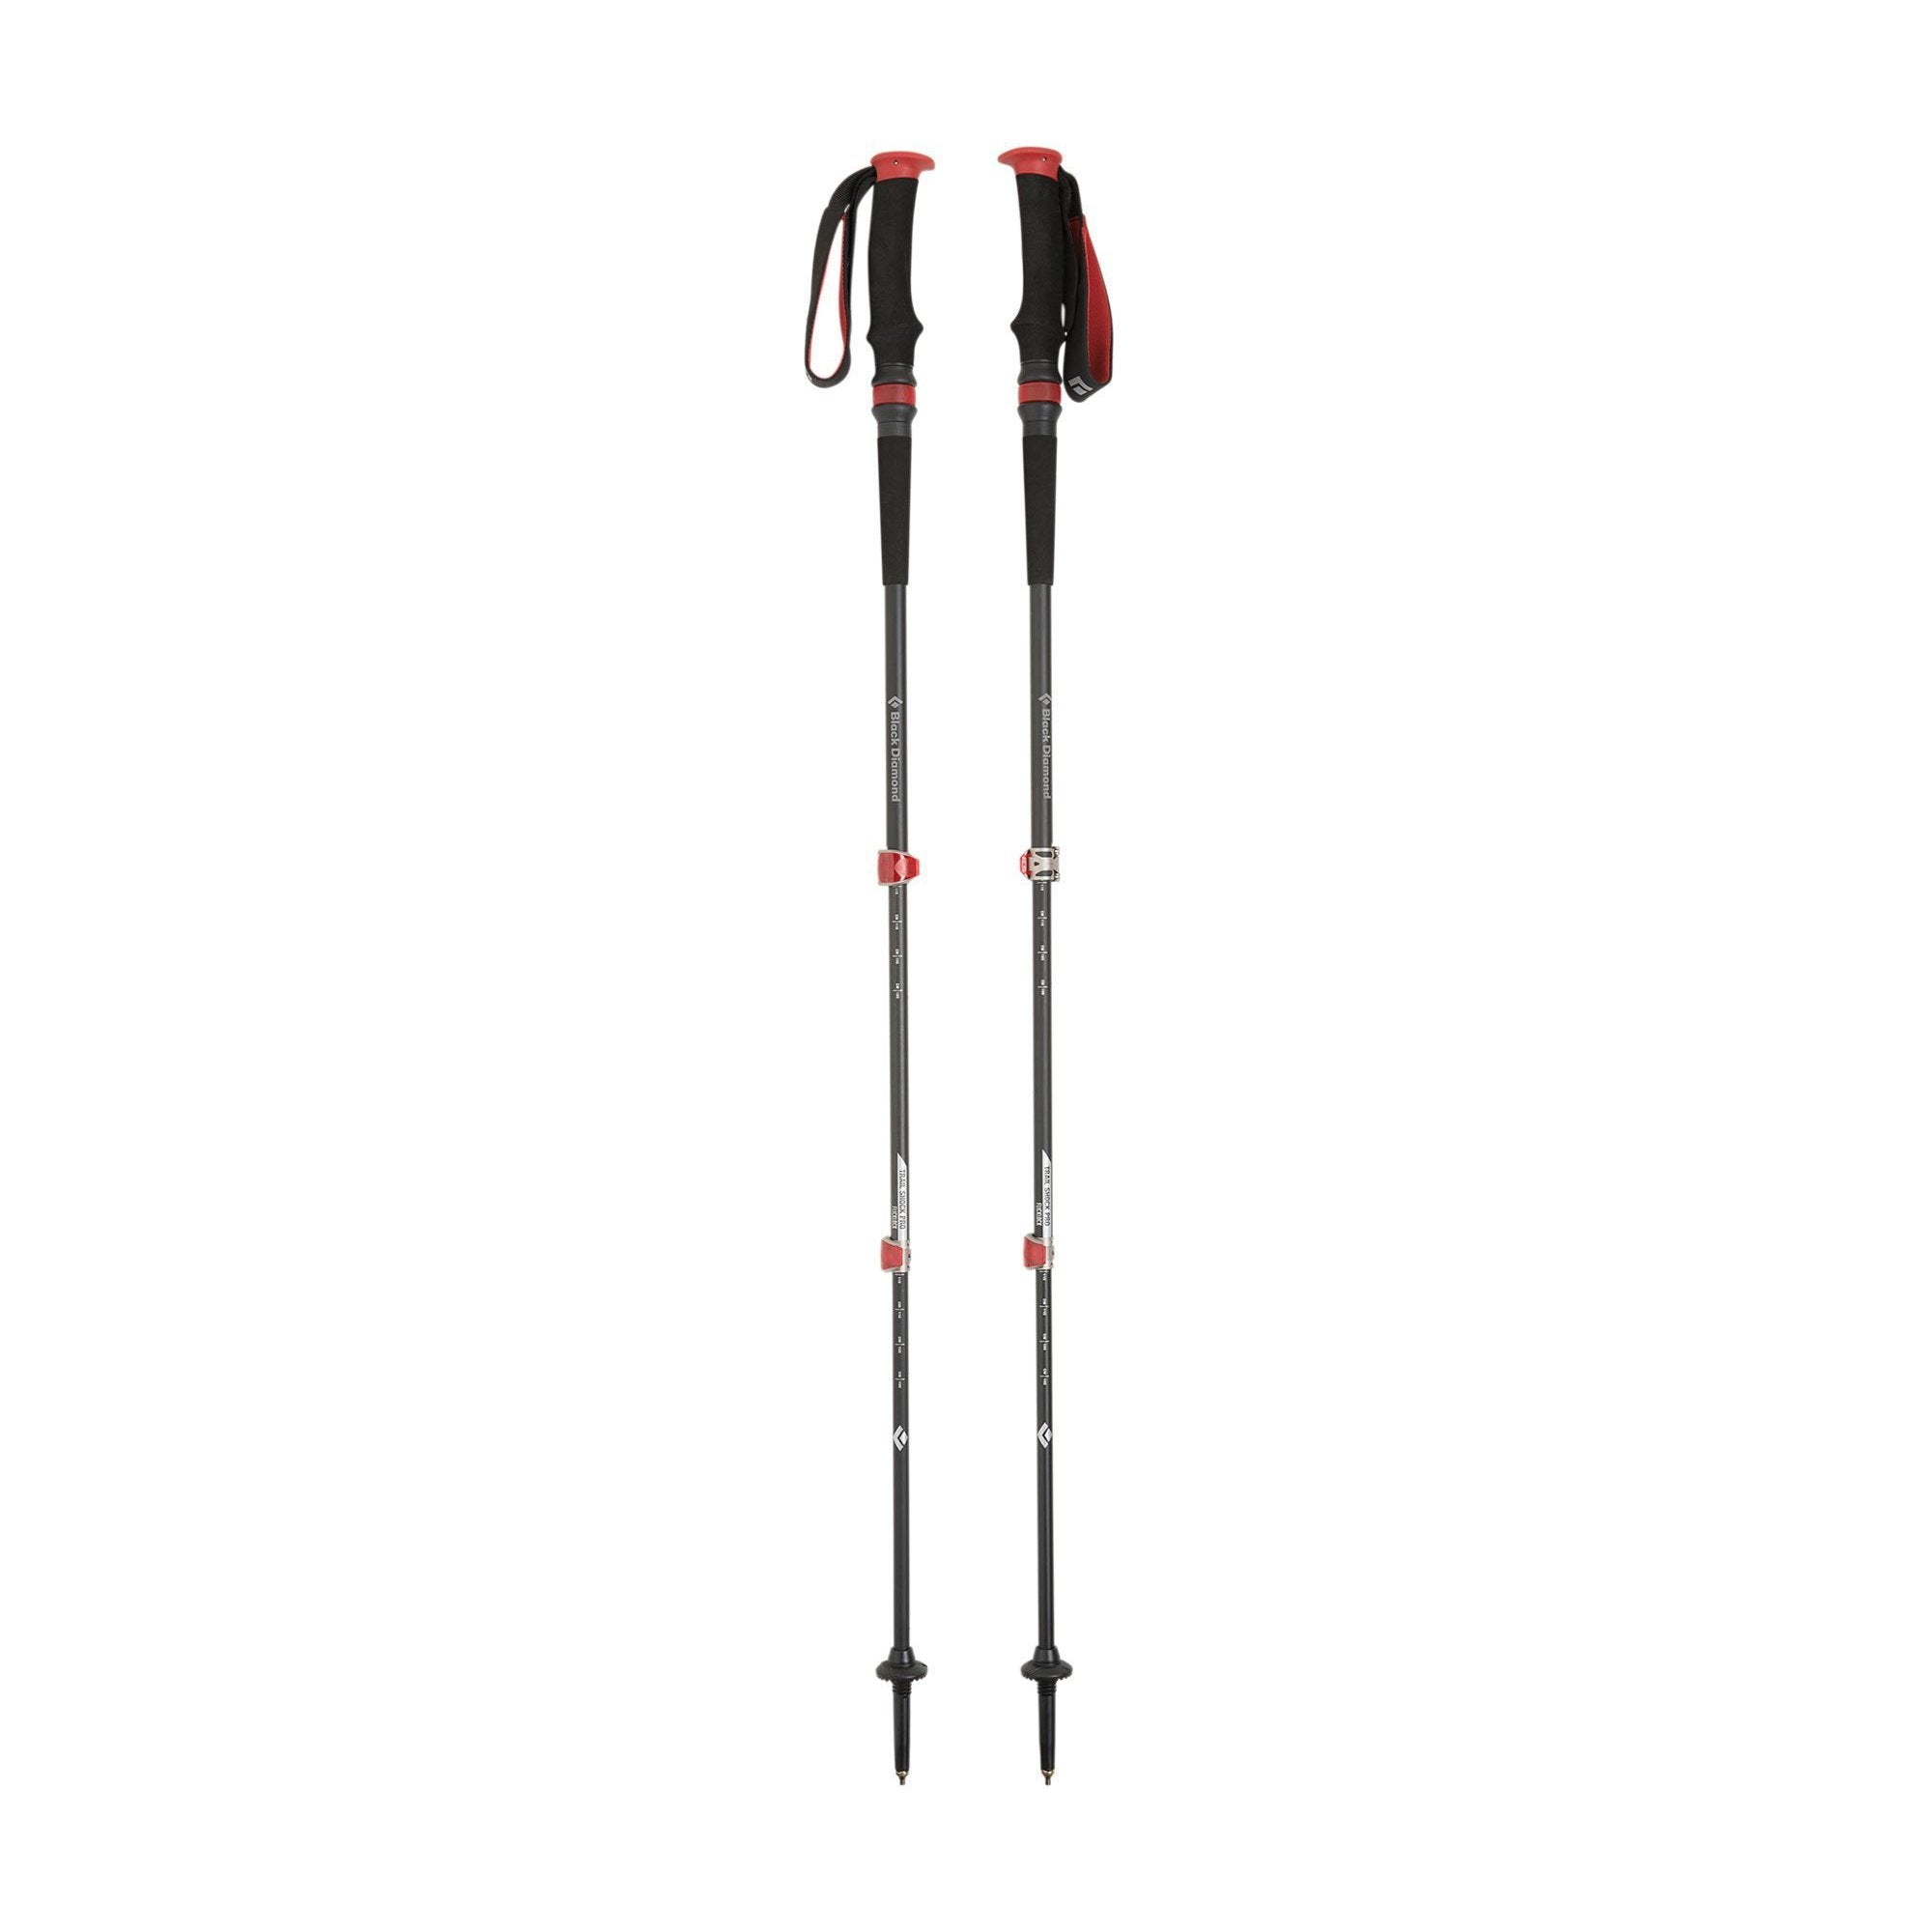 Black Diamond Trail Pro Shock trekking pole, pair shown fully extended